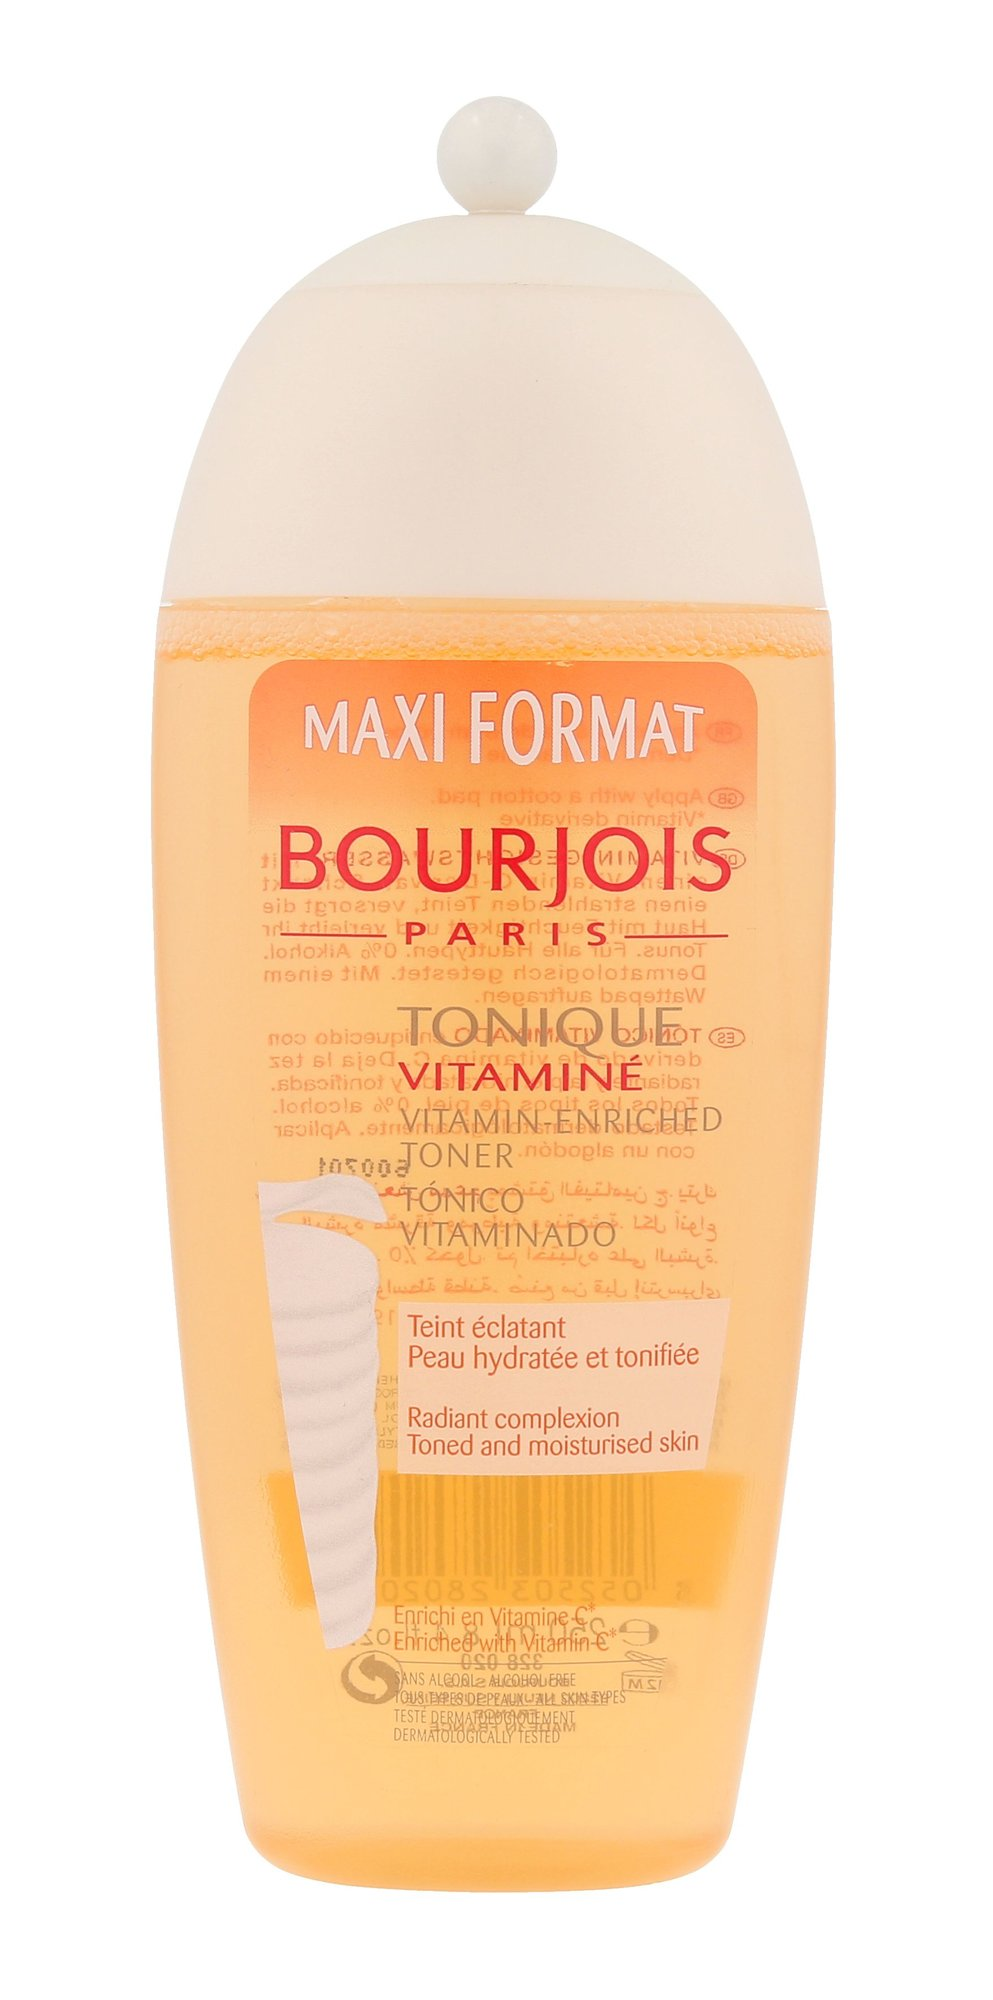 BOURJOIS Paris Vitamin Enriched Toner Cosmetic 250ml